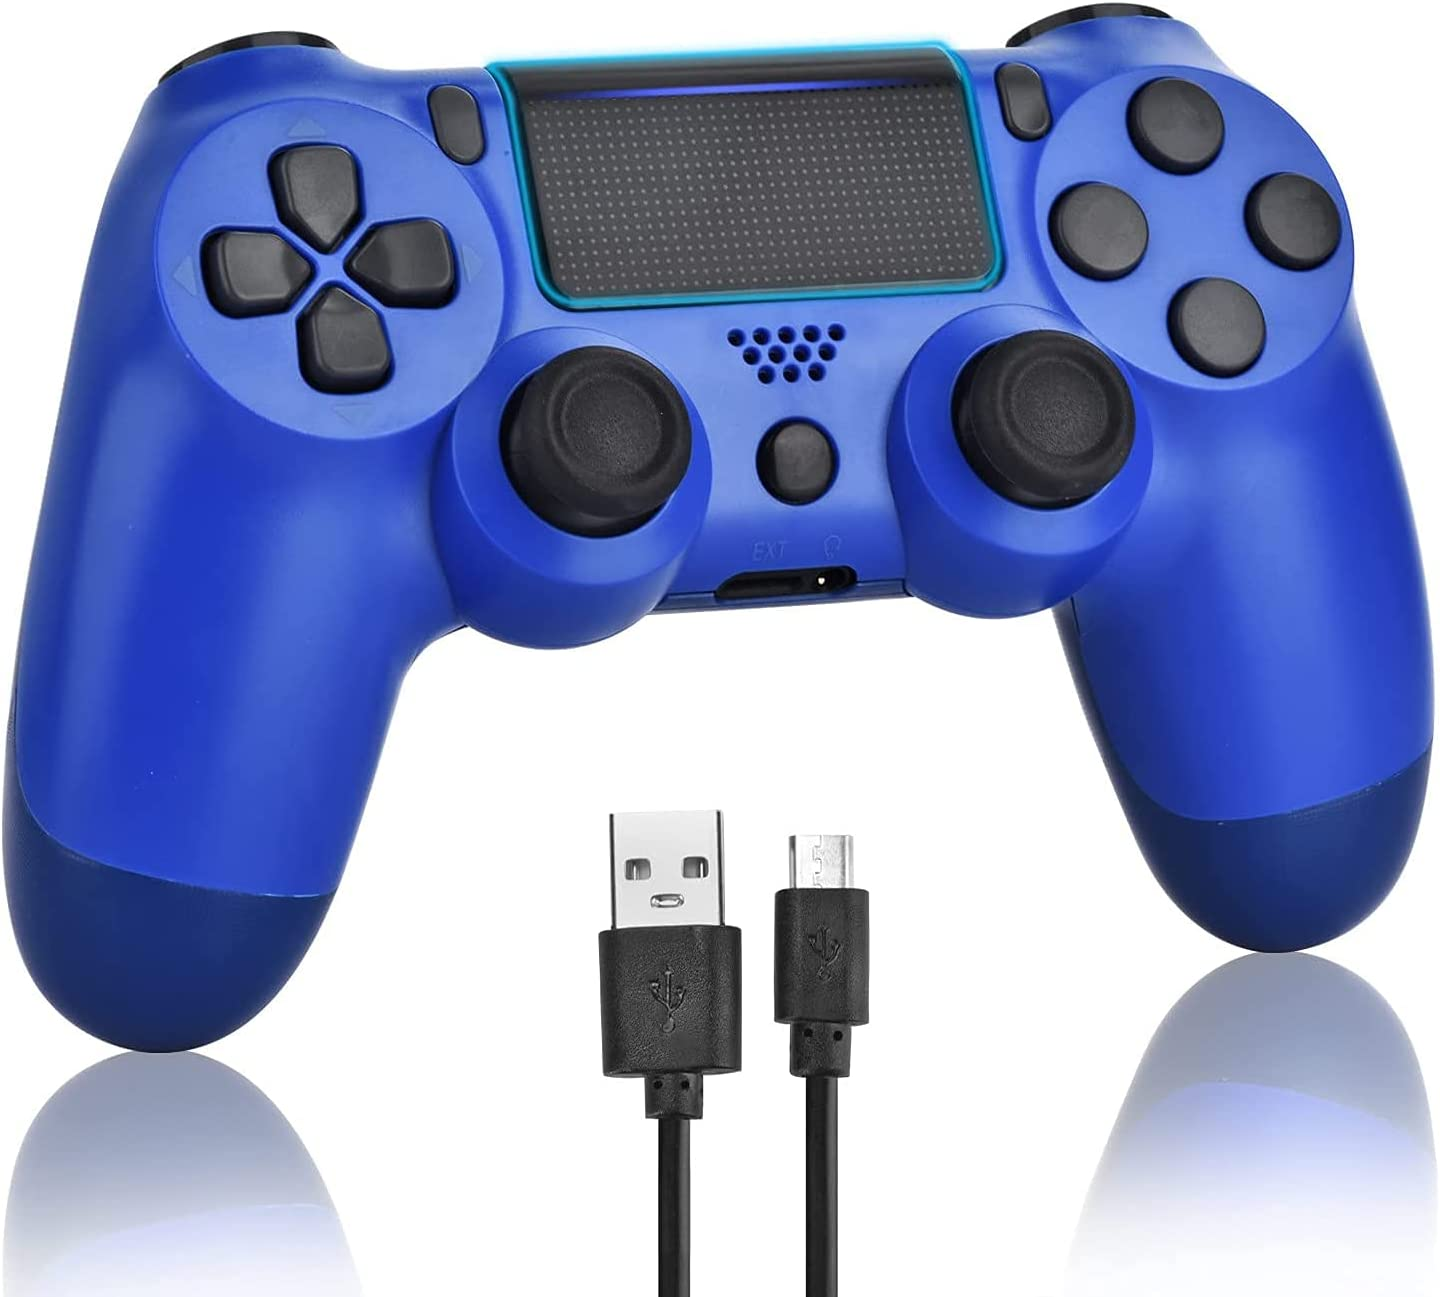 Wiv77 Wireless Game Controller, Controller Remote Control with Charging Cable and Two Motors (Blue)